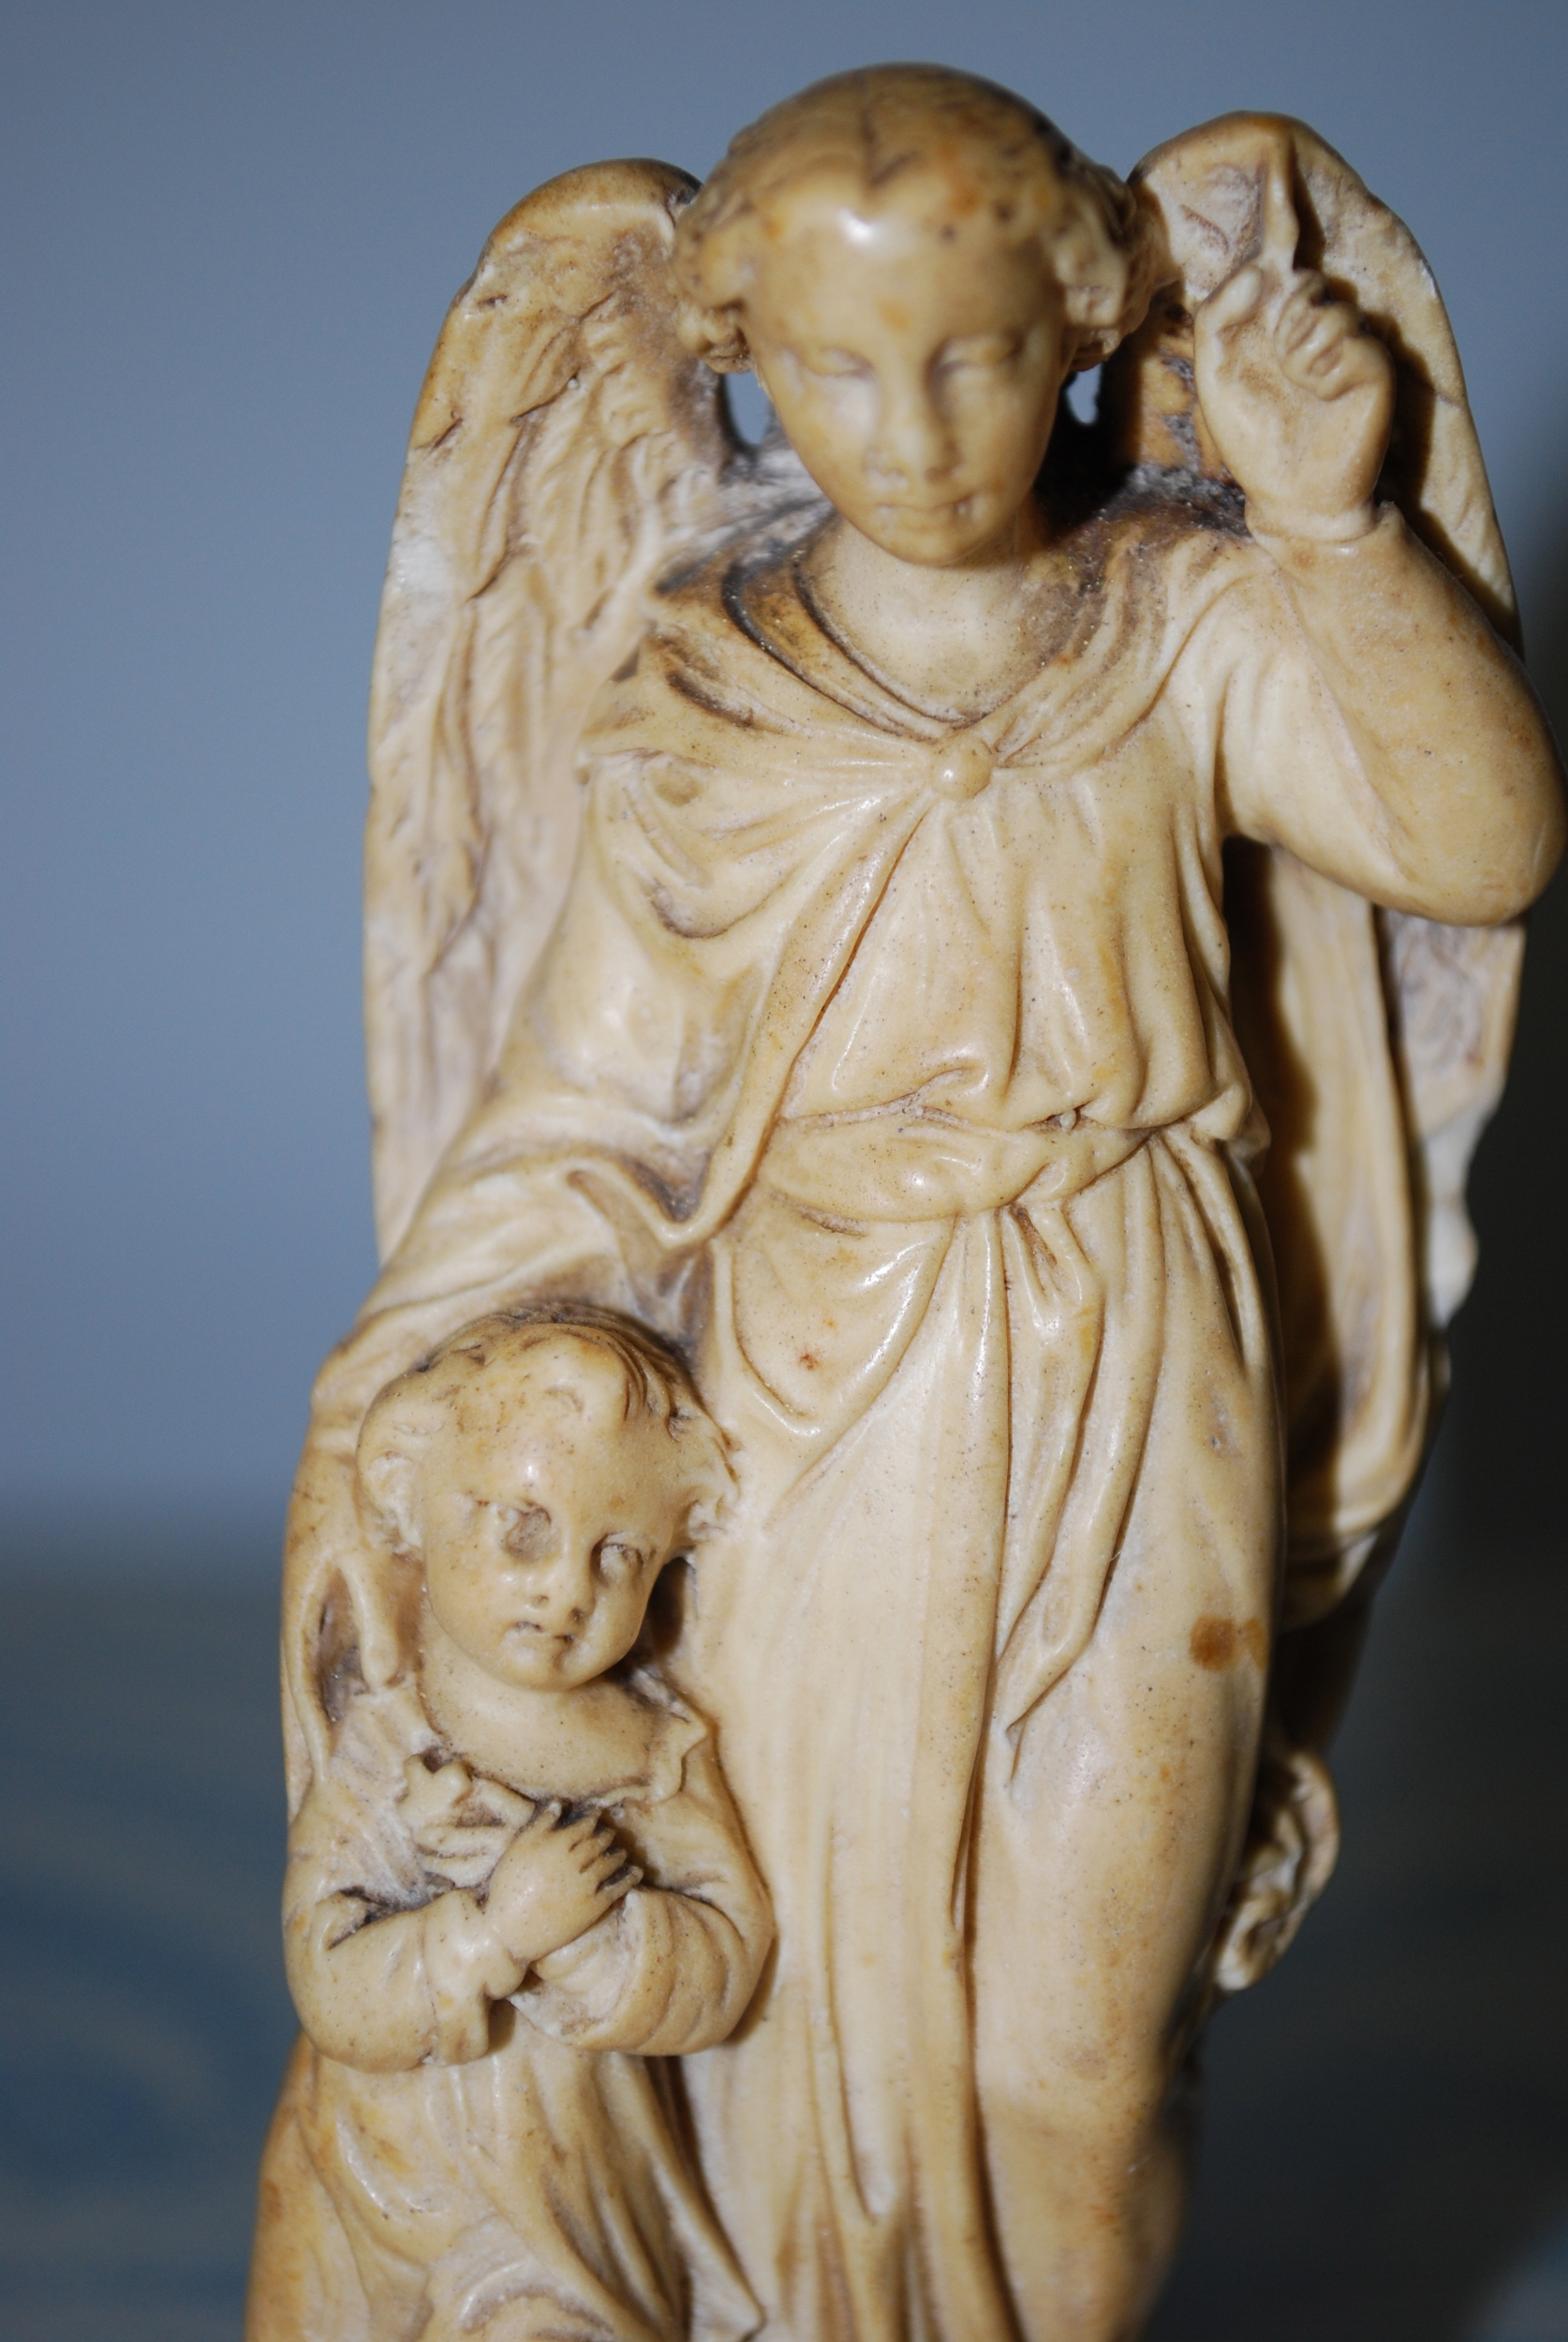 Fig. 2 Plaster Guardian Angel with Child, late 19th century